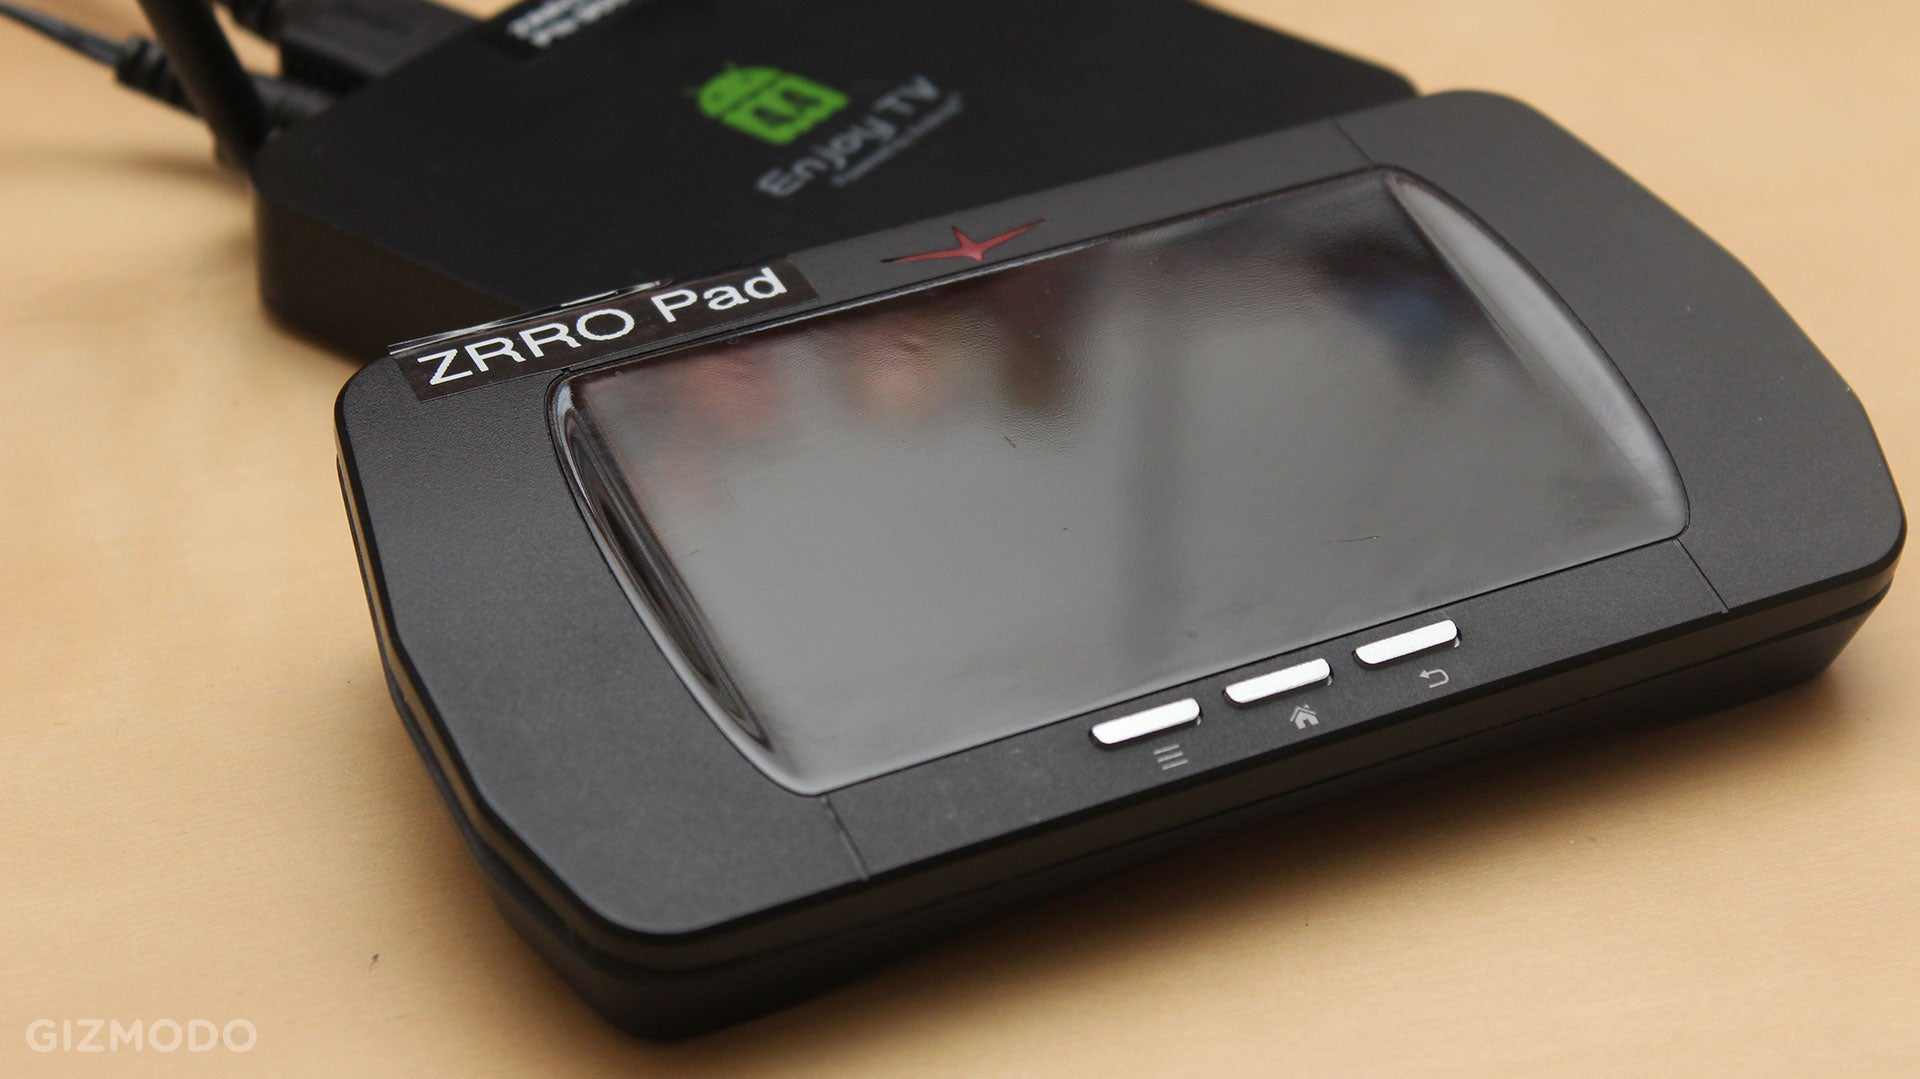 The ZRRO Hoverpad Is Almost The Game Controller I Want For My TV